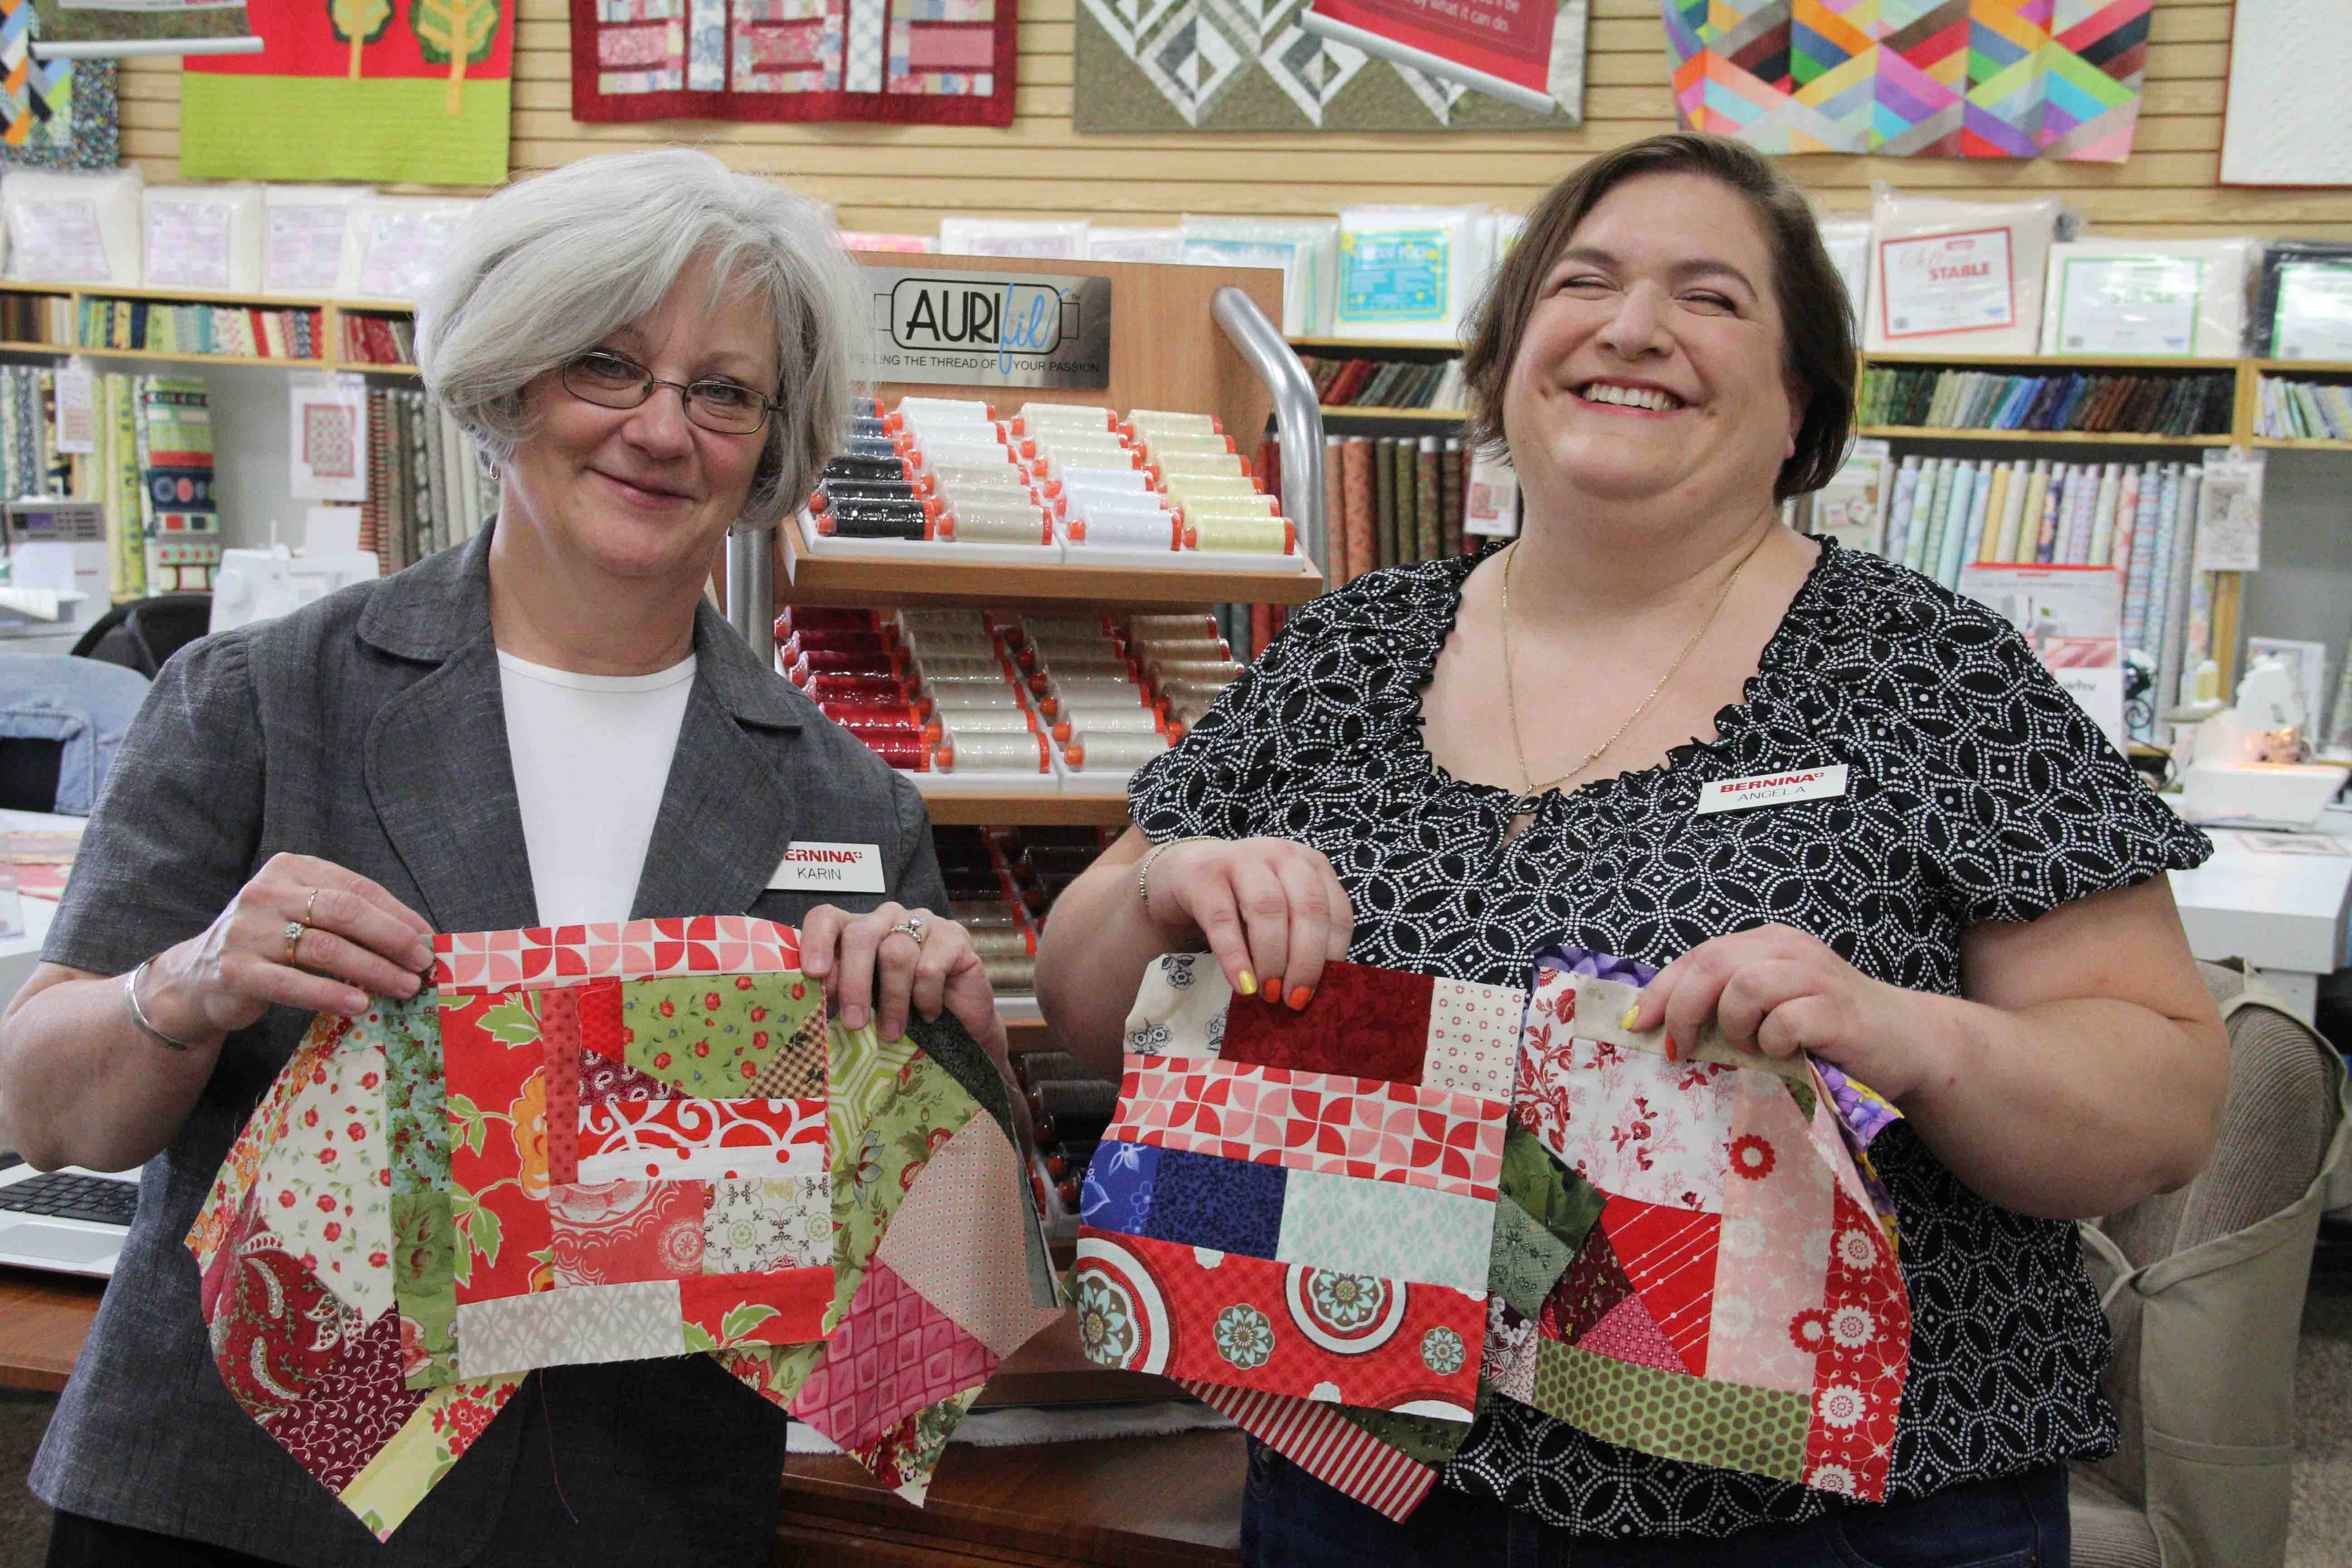 Owner Karin Furio and Angela Aldaz display quilt blocks made by volunteers at Sew Generously.